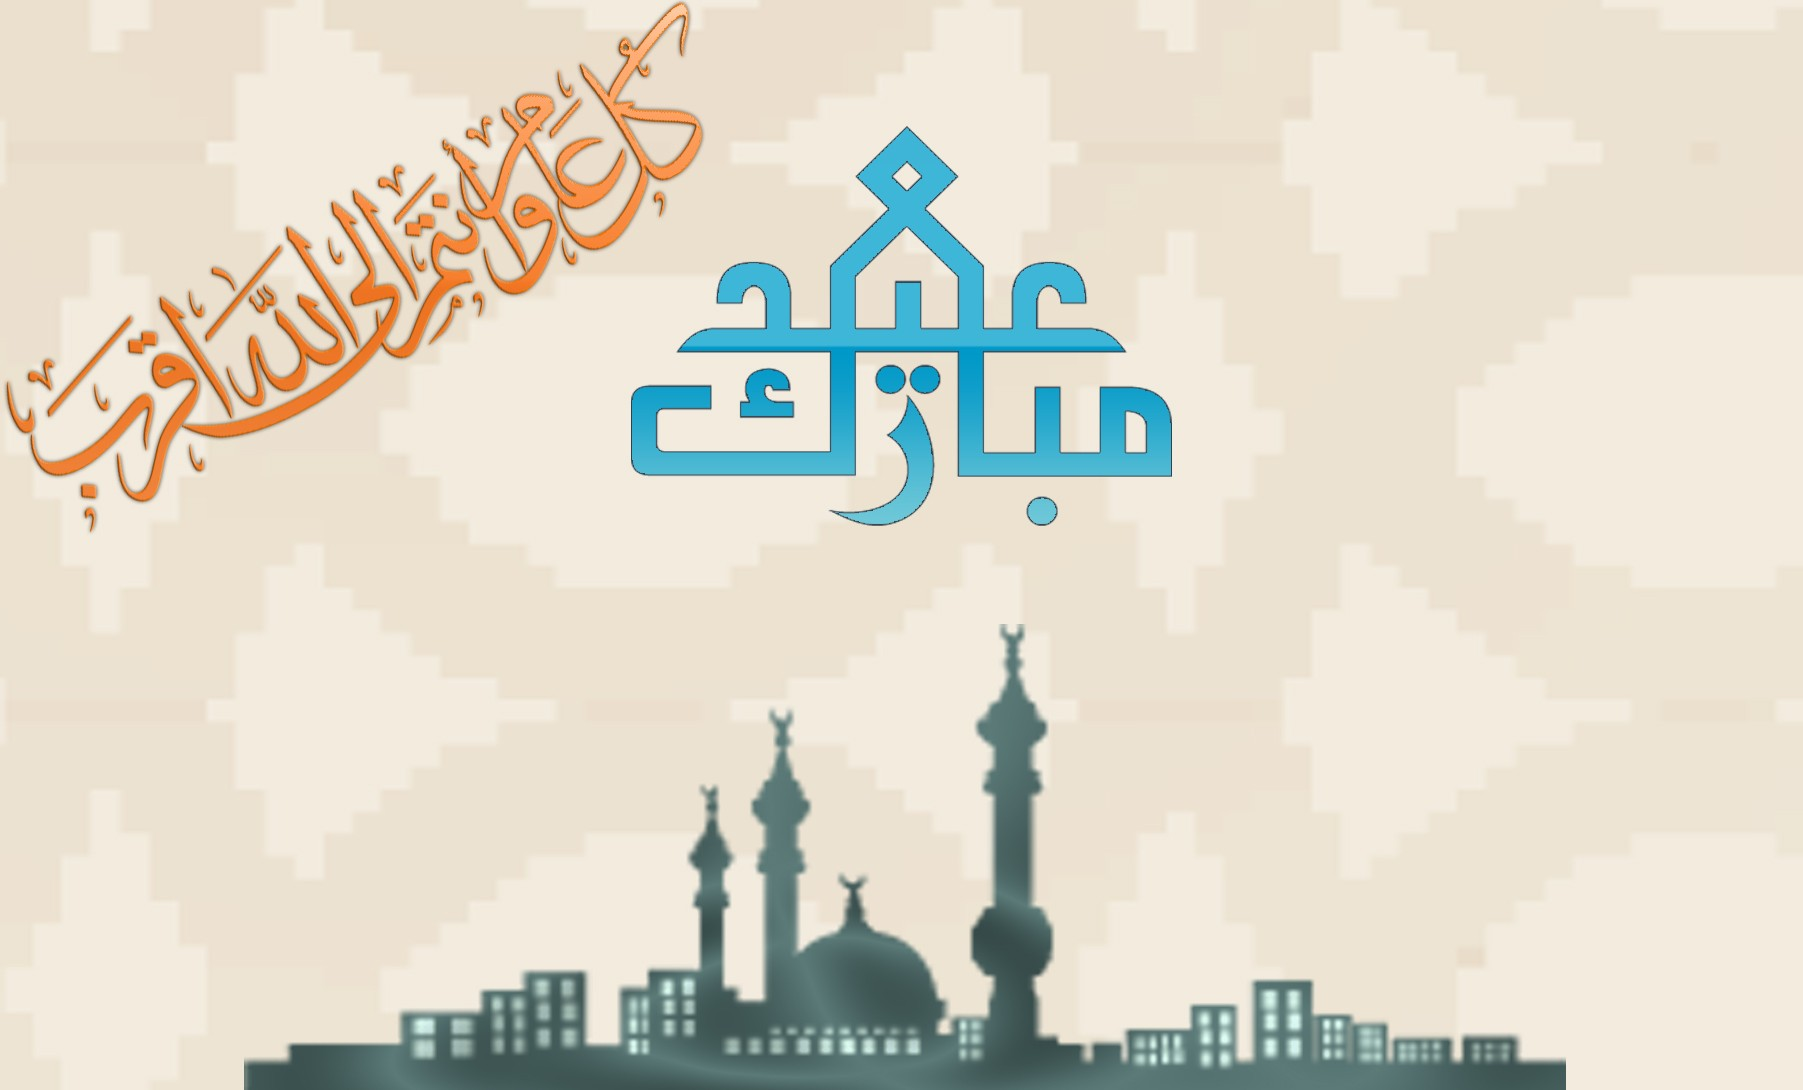 Eid Ul Fitr 2015 Wallpaper Free Download 13359 Wallpaper